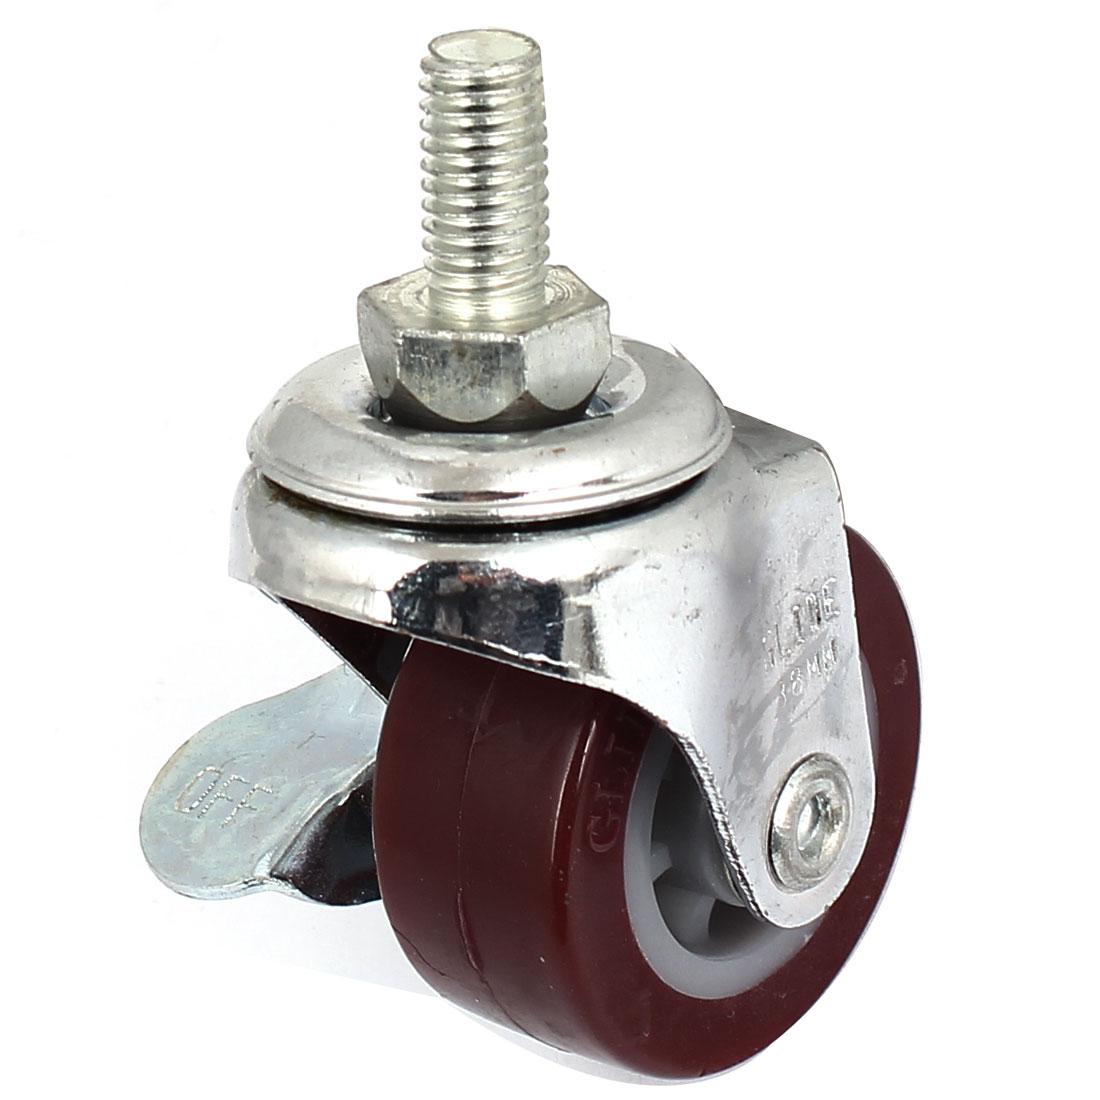 38mm Single Wheel 360 Degree Side Brake Threaded Stem Swivel Caster Burgundy